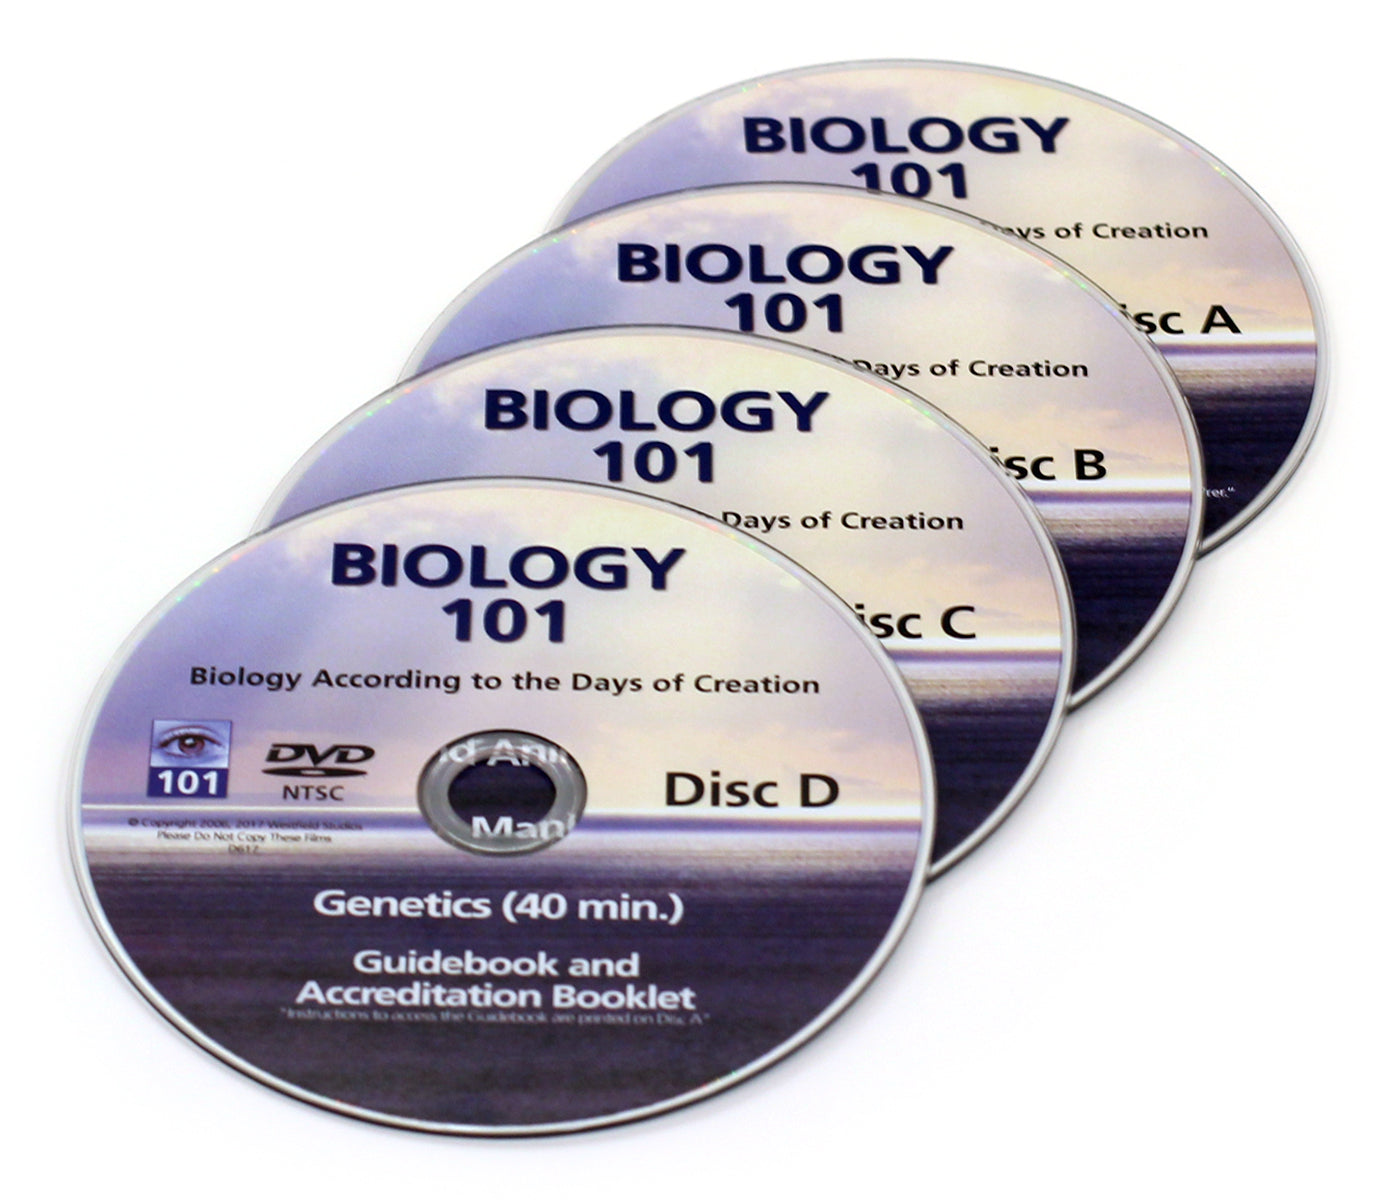 Biology 101 Replacement Discs